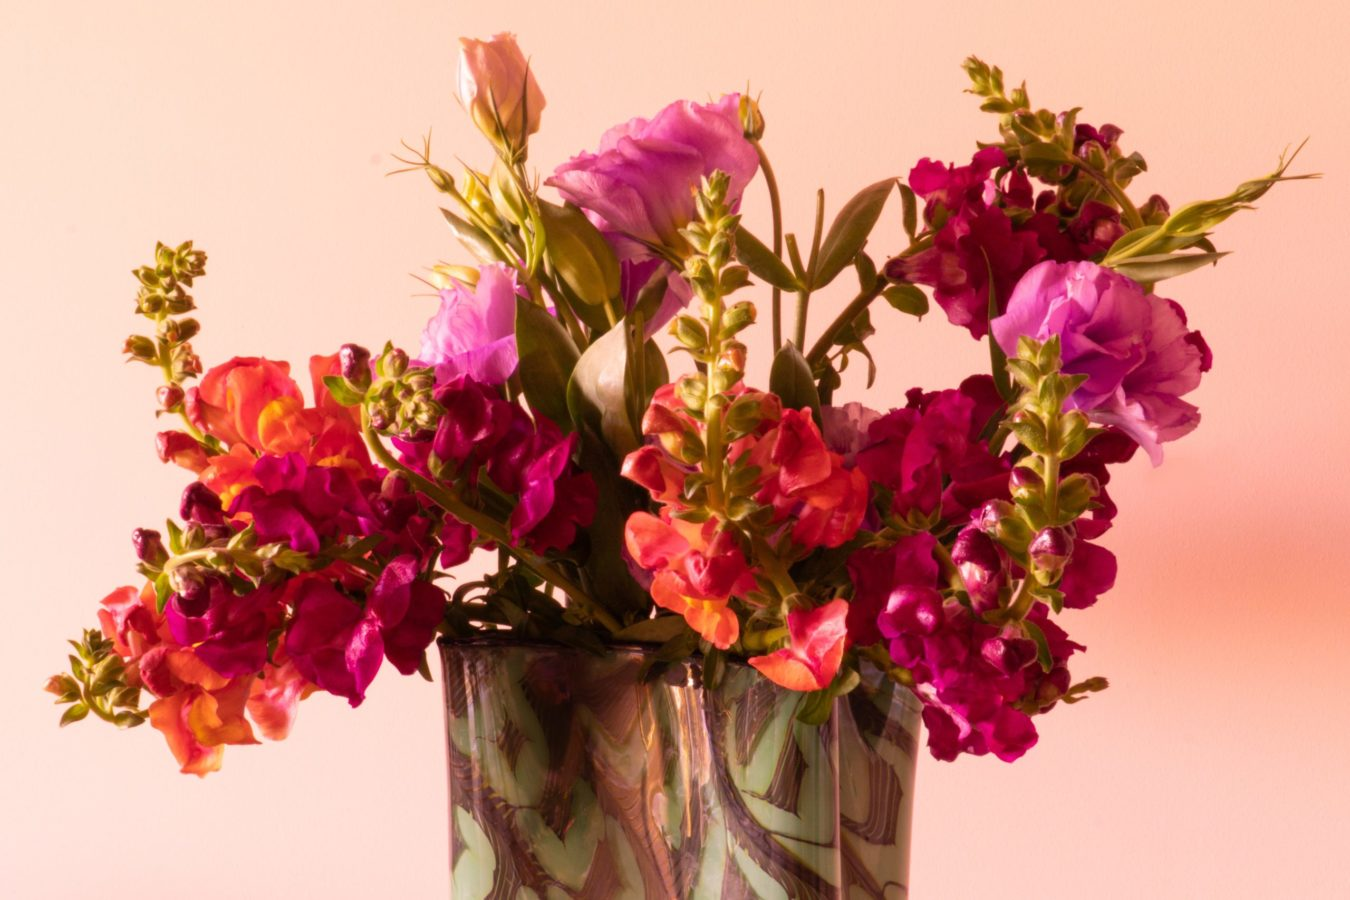 How to style a beautiful floral arrangement that will brighten up any room